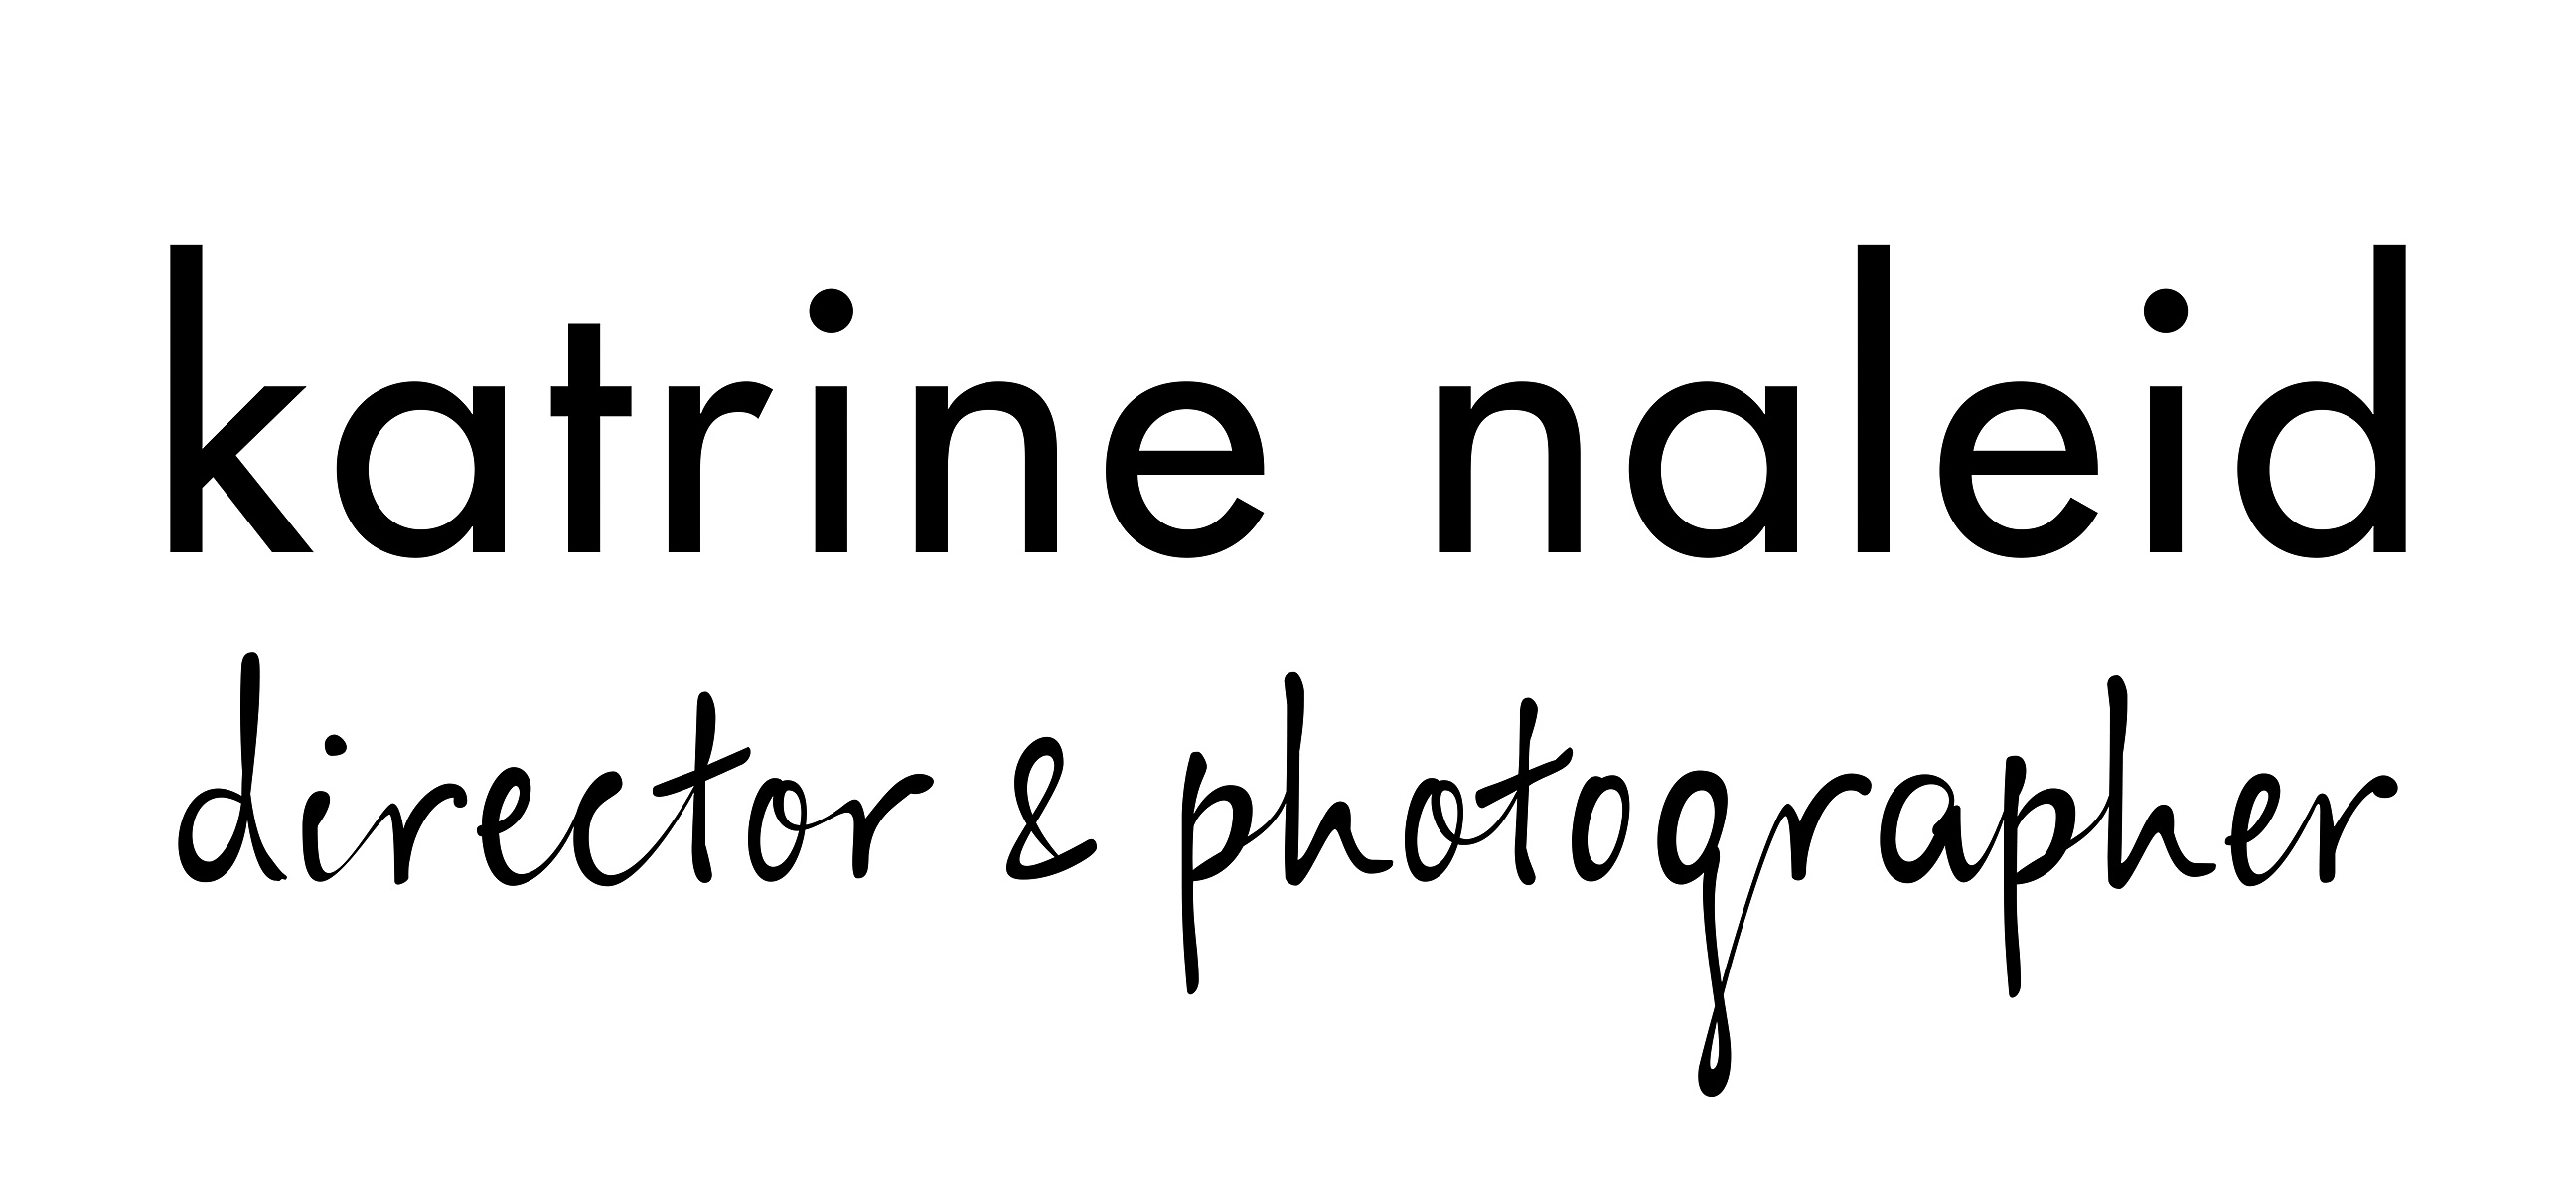 katrine_naleid_director_photographer-logo-v01-design